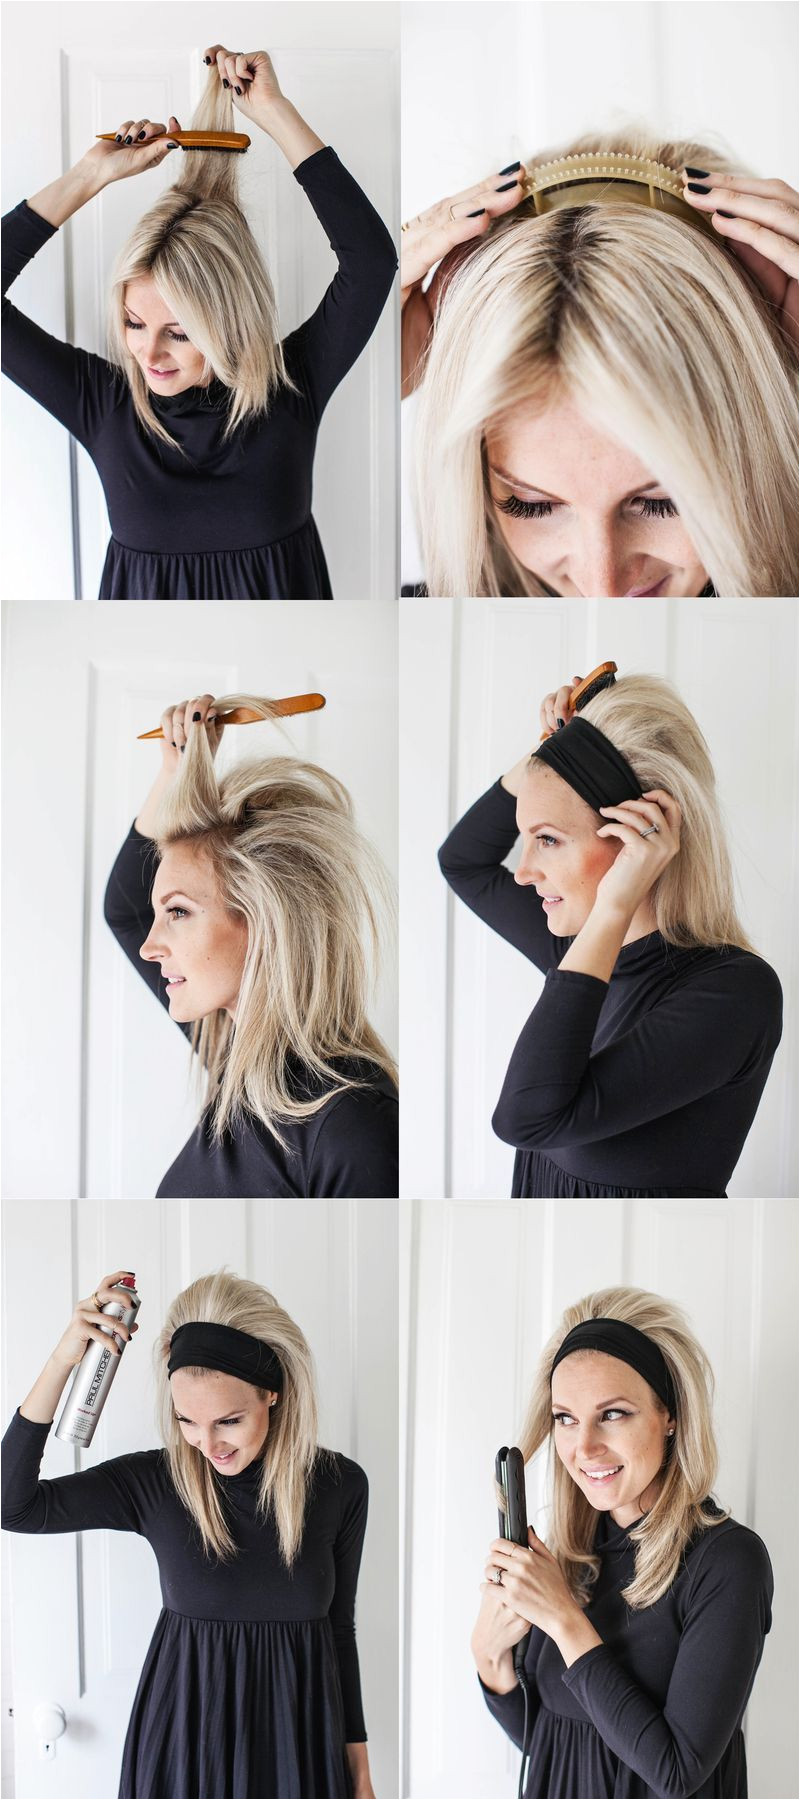 To help inspire your go to summer hairstyle click here to see our favorite hair tutorials from some of our favorite bloggers